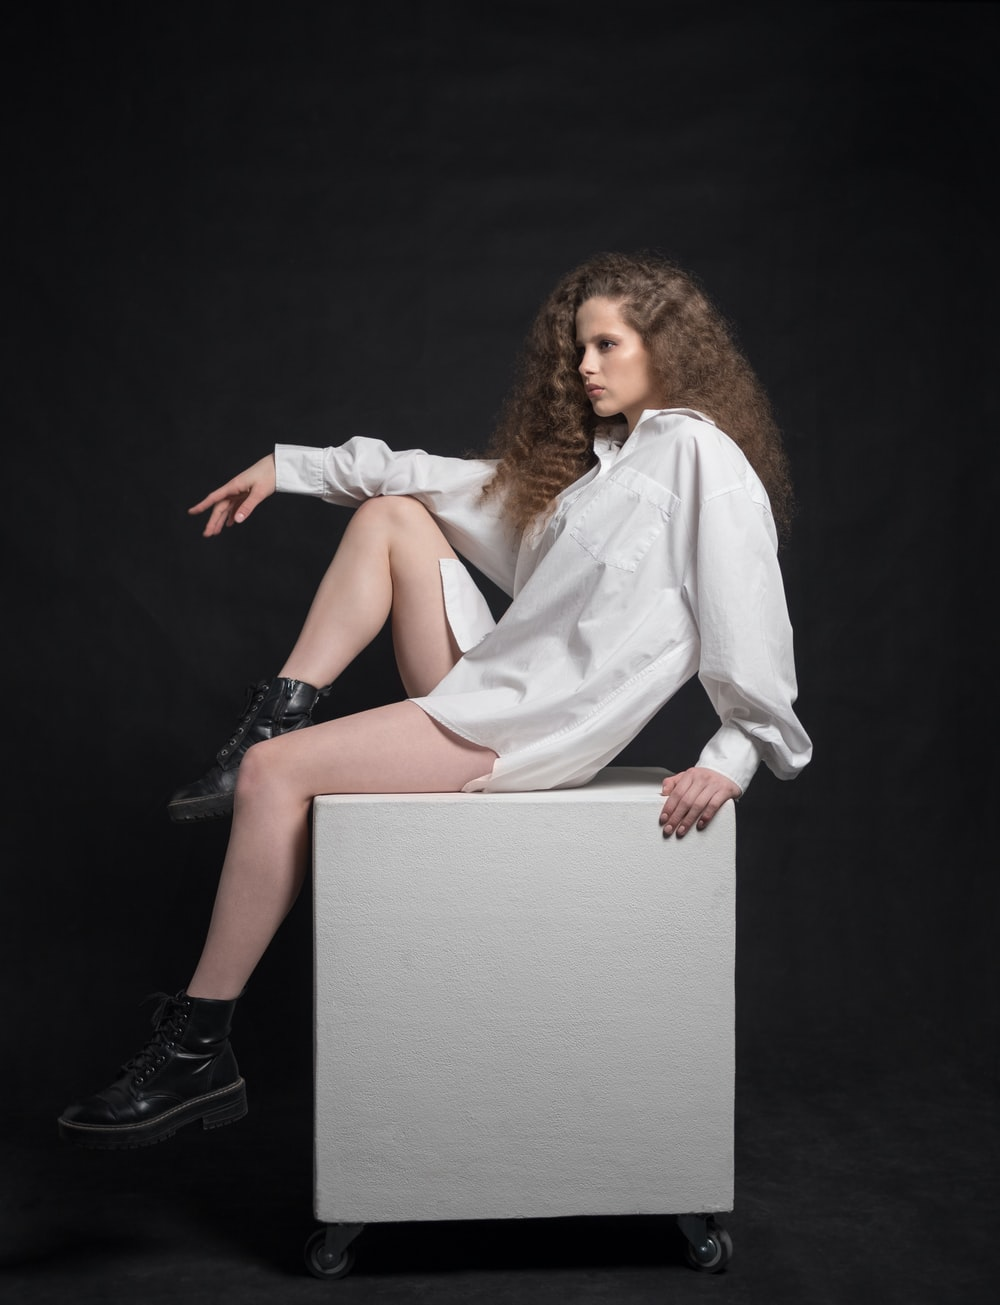 woman in white long sleeve shirt and black skirt sitting on white wooden table